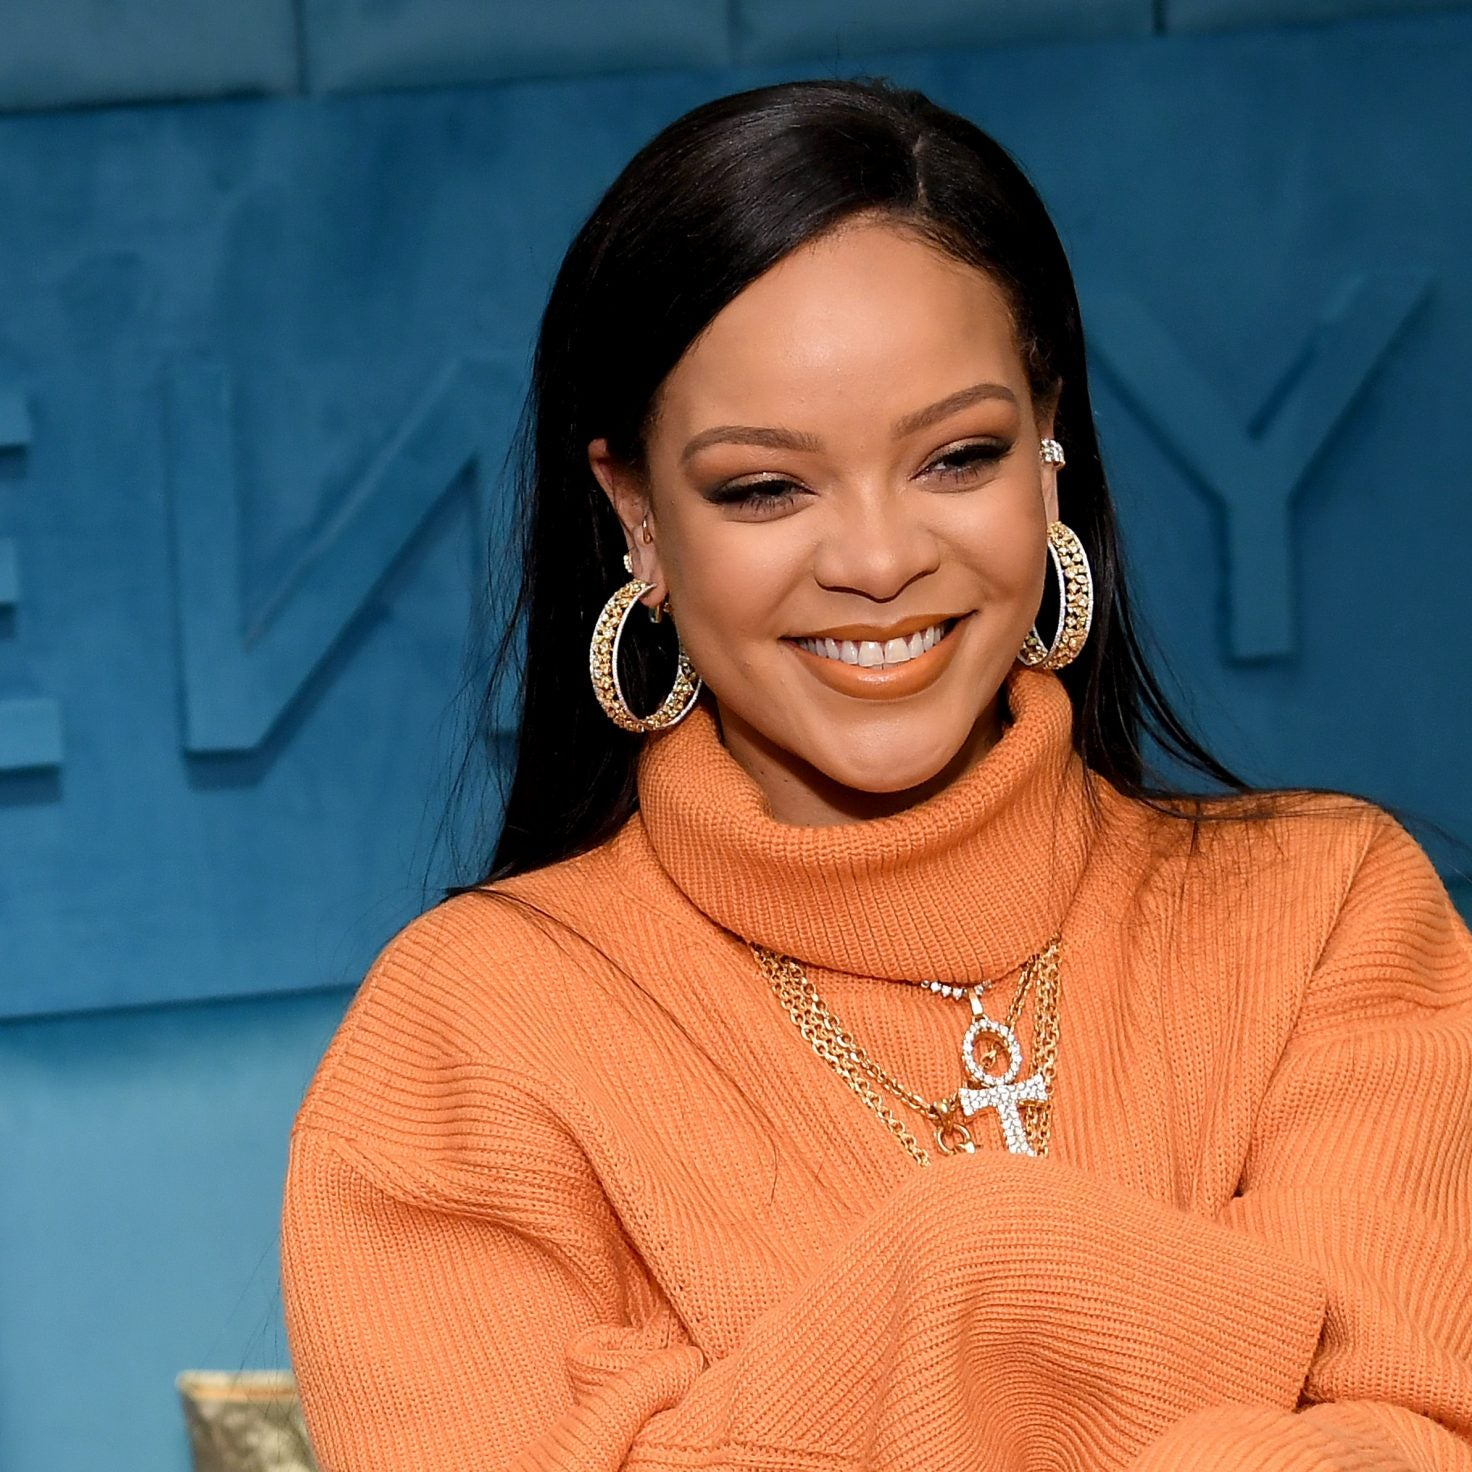 Here Is How Newly Single Rihanna Plans To Spend Valentine's Day